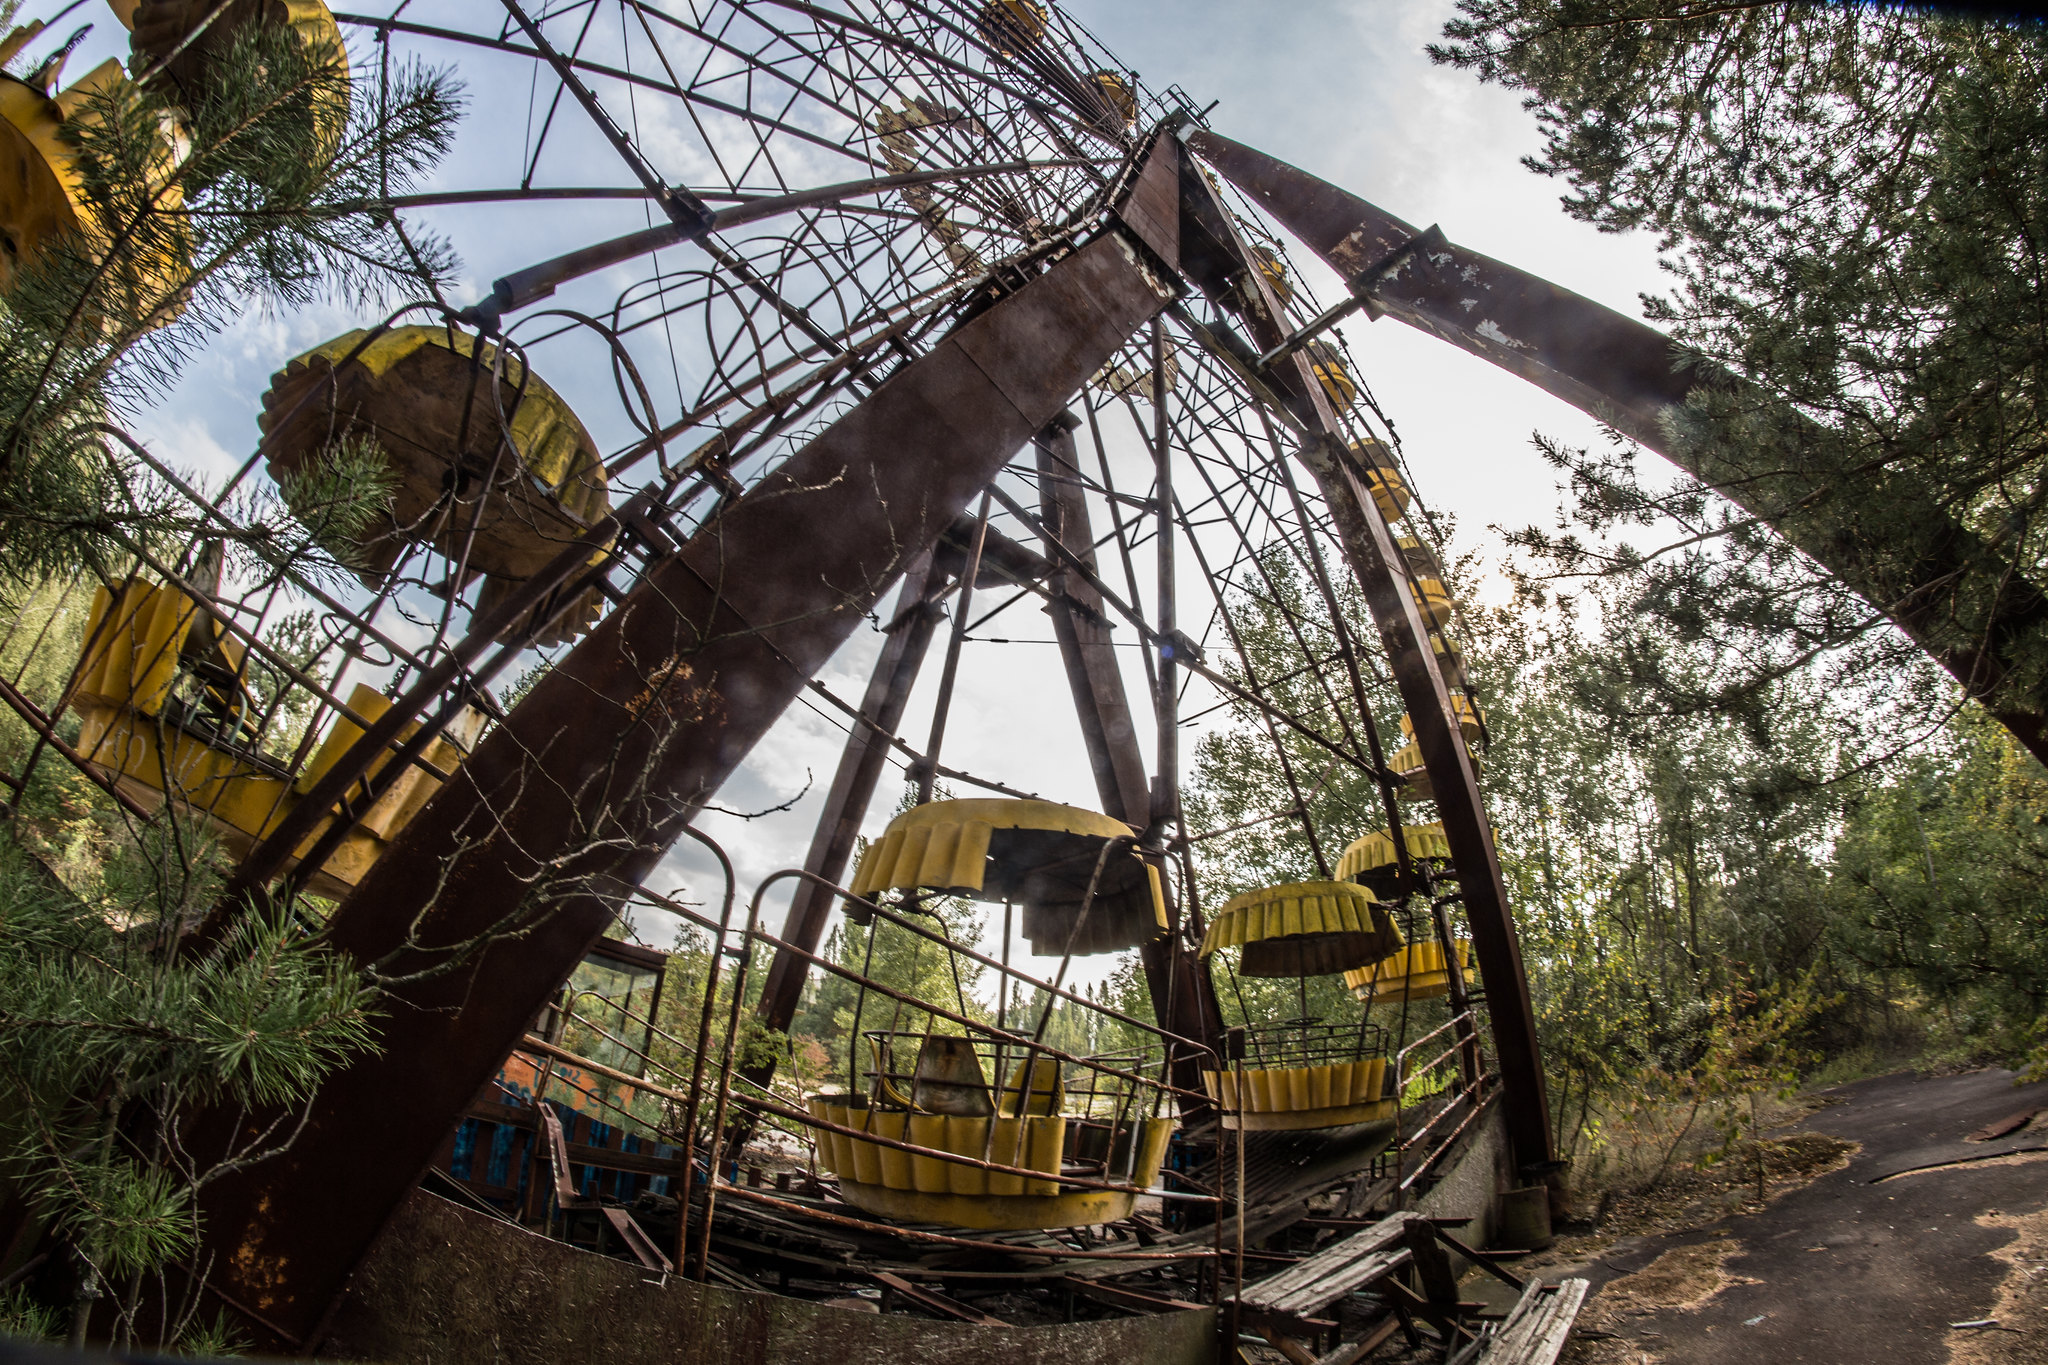 CHERNOBYL 30 YEARS AFTER — Public Domain CC060905-Tschernobyl 30 Years After | Public Domain CC0